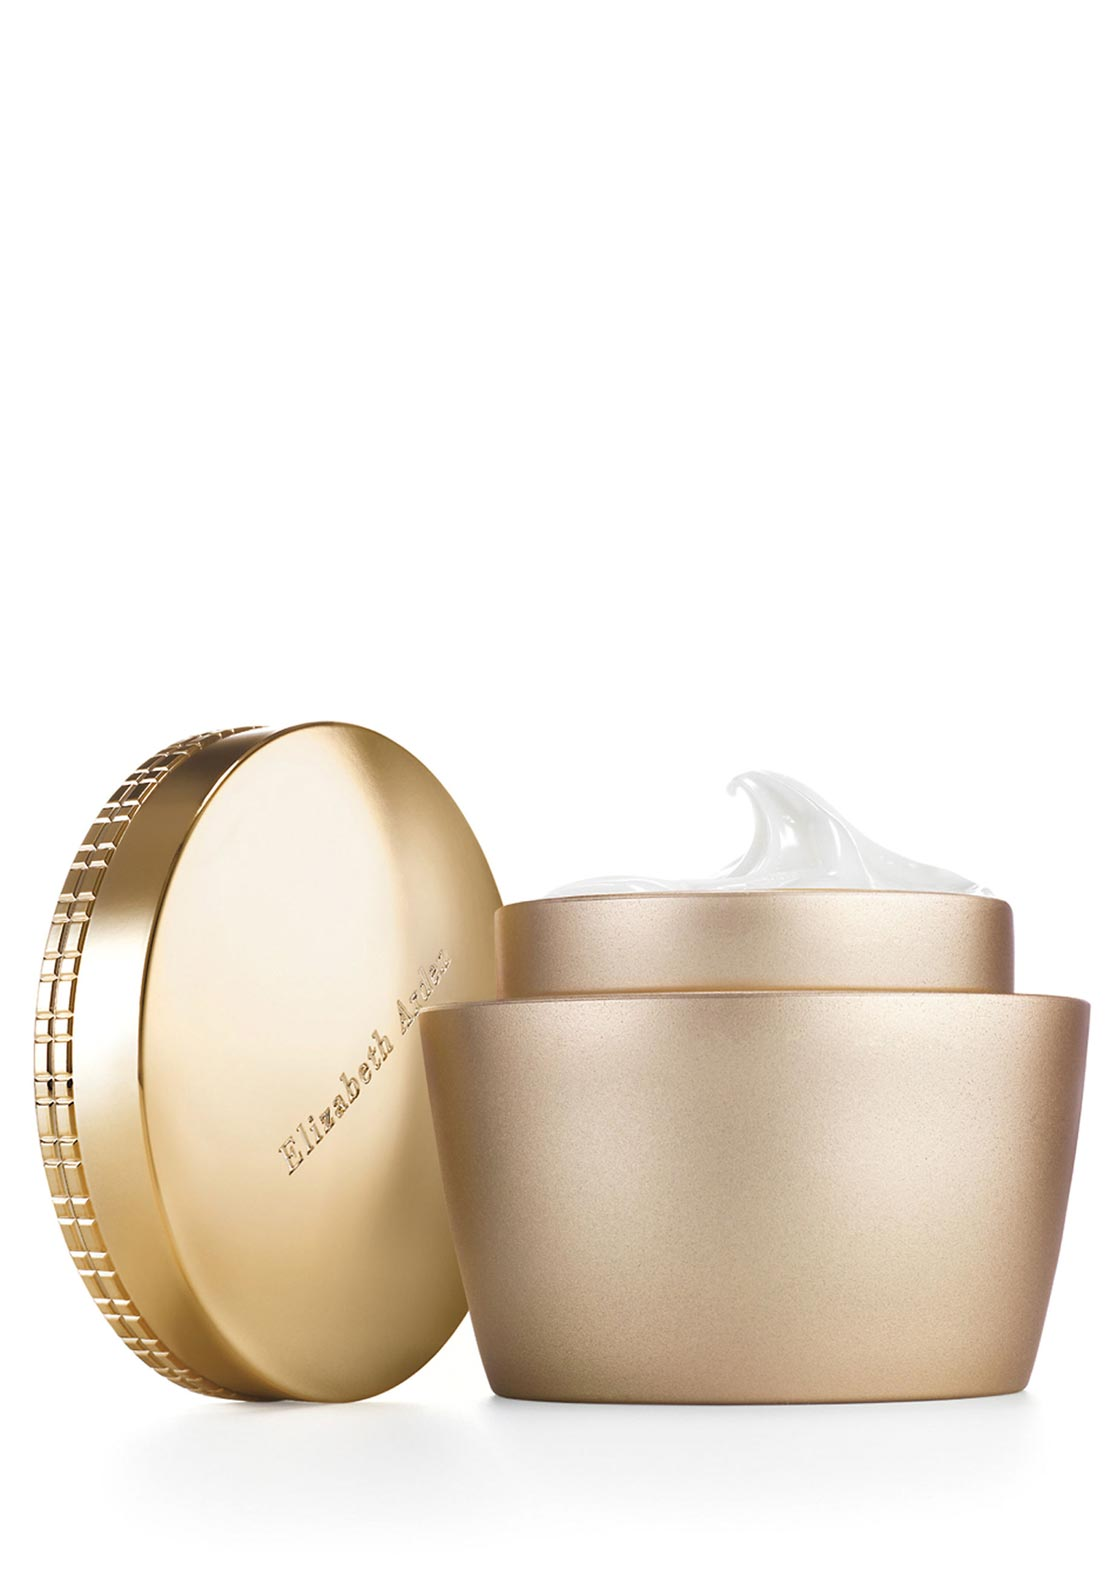 Elizabeth Arden Intense Moisture and Renewal Activation Cream, 50ml